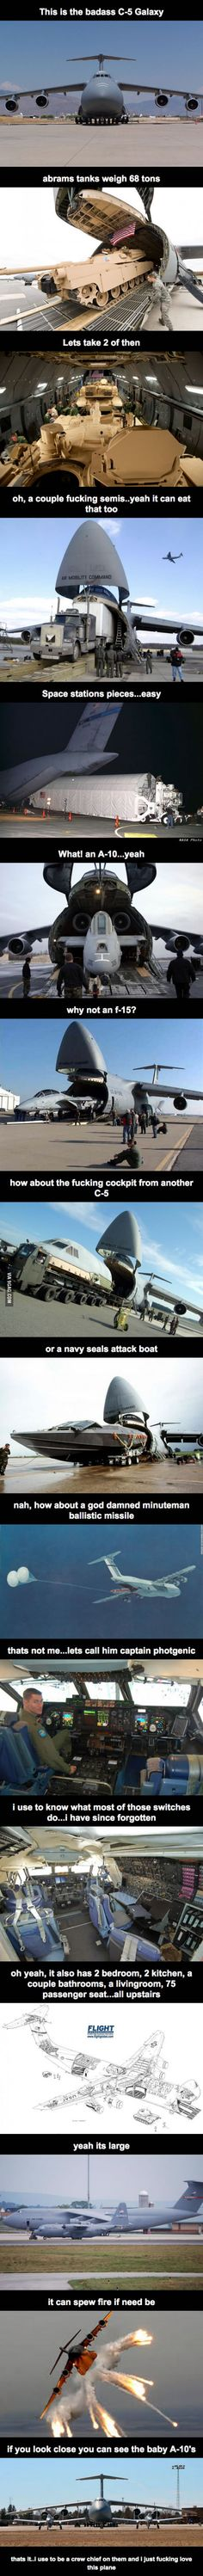 This is how big planes are